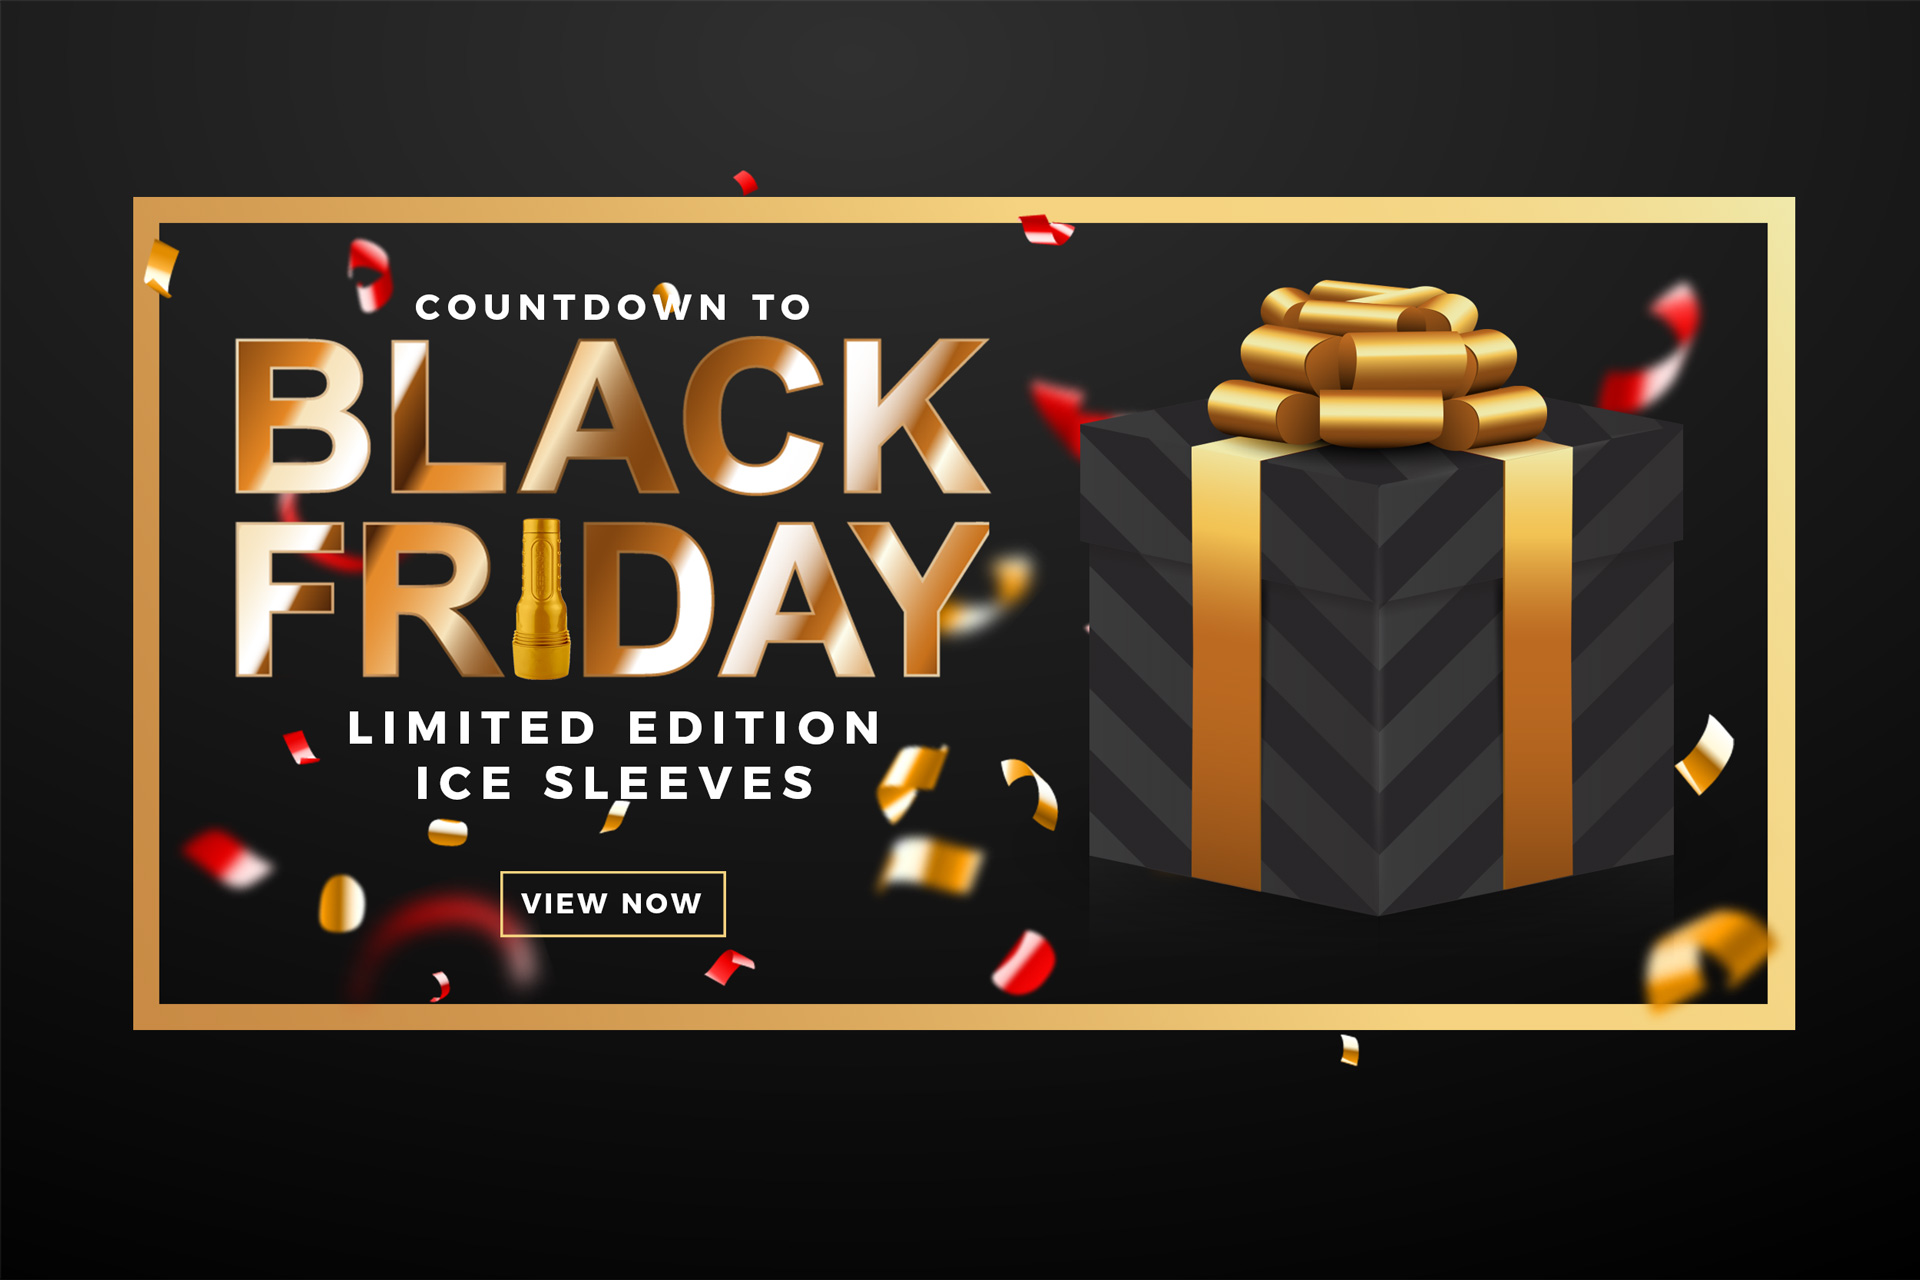 Fleshlight Black Friday 2019